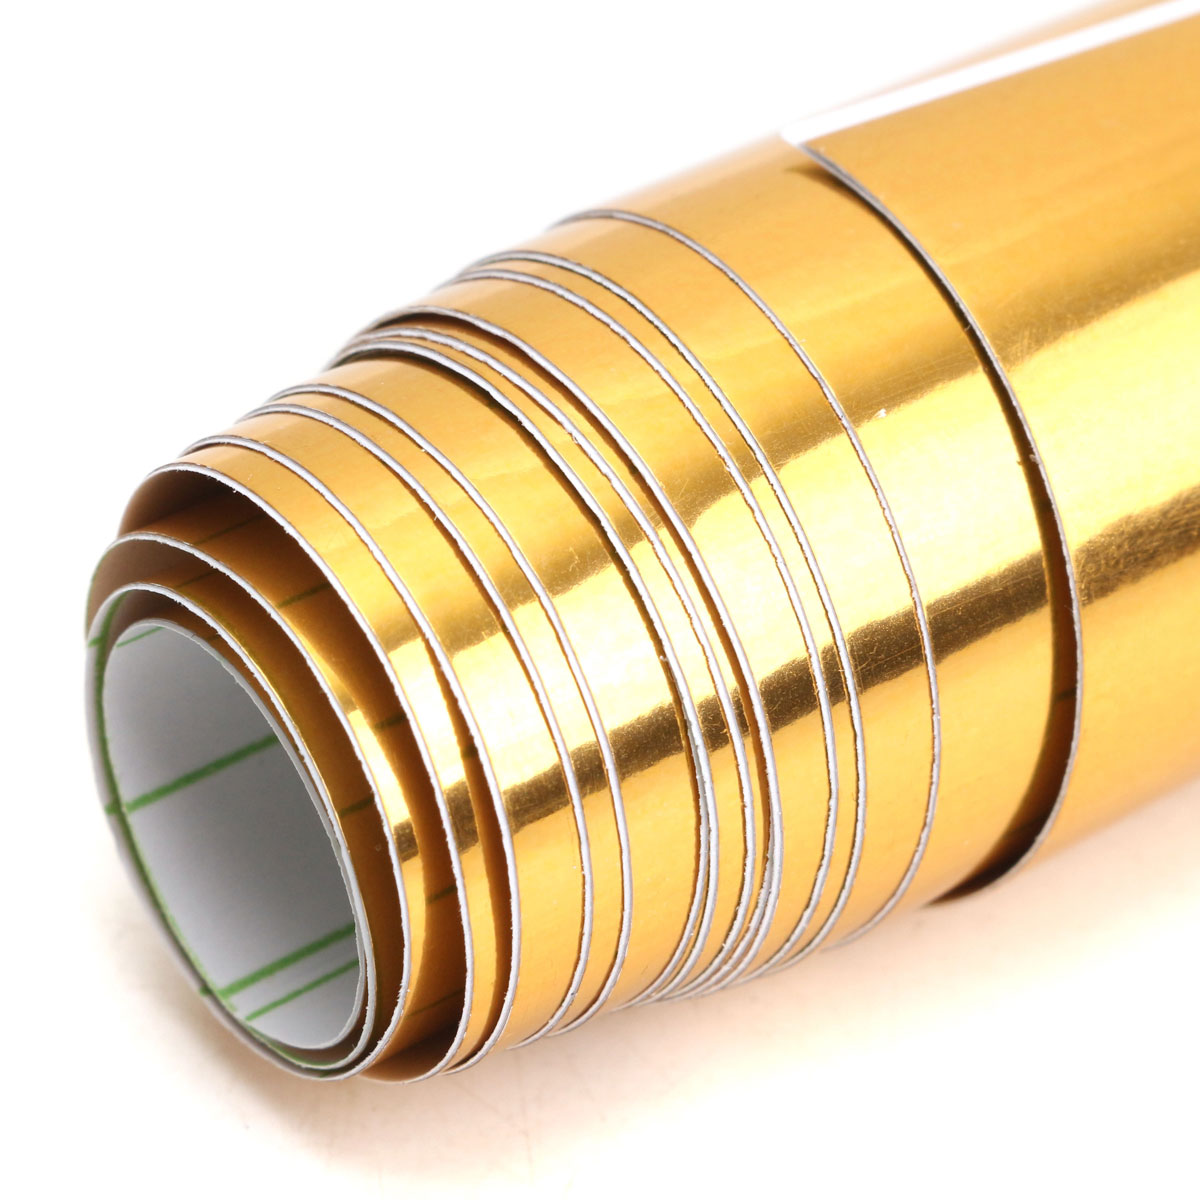 Image 5 - Gold Golden Chrome Mirror Vinyl Wrap Film Car Sticker Decal Bubble Free Air Release DIY Car Styling 10*150cm-in Car Stickers from Automobiles & Motorcycles